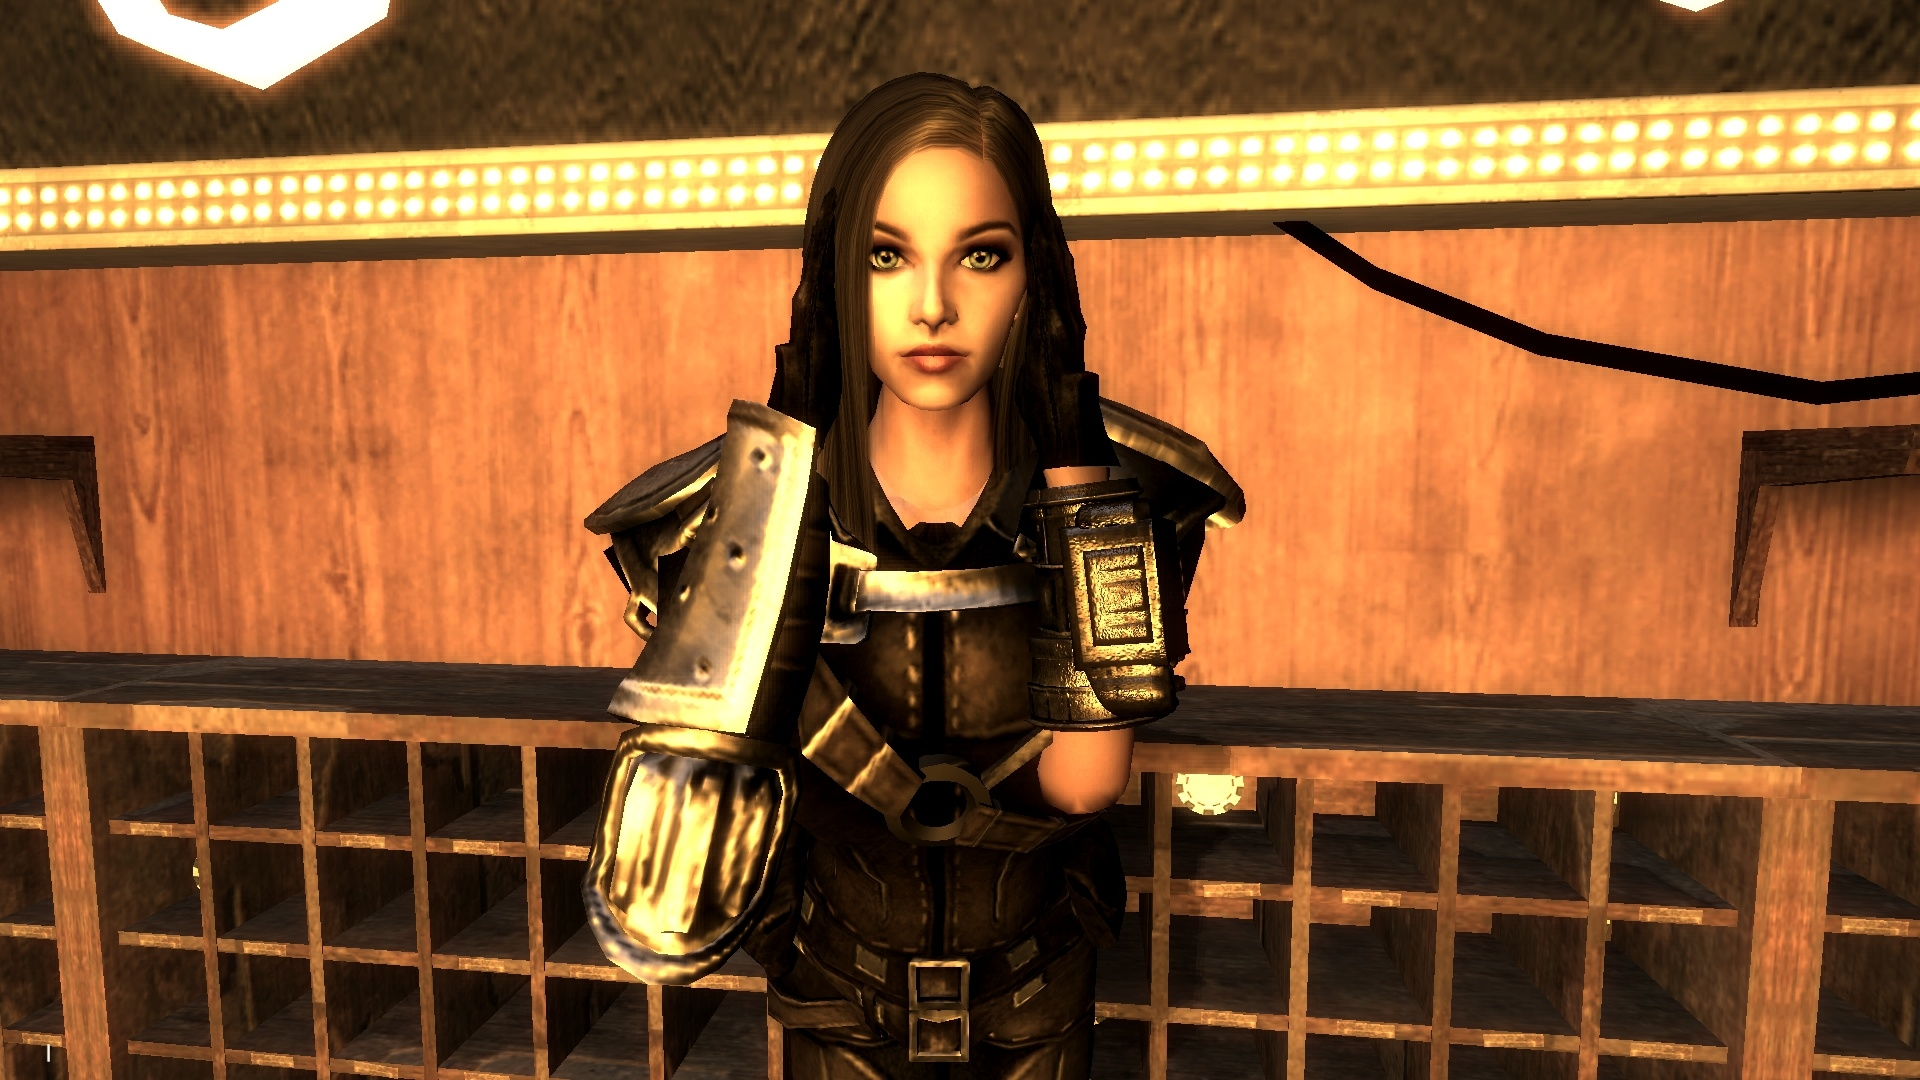 fallout new vegas female character mystyks faces nv at